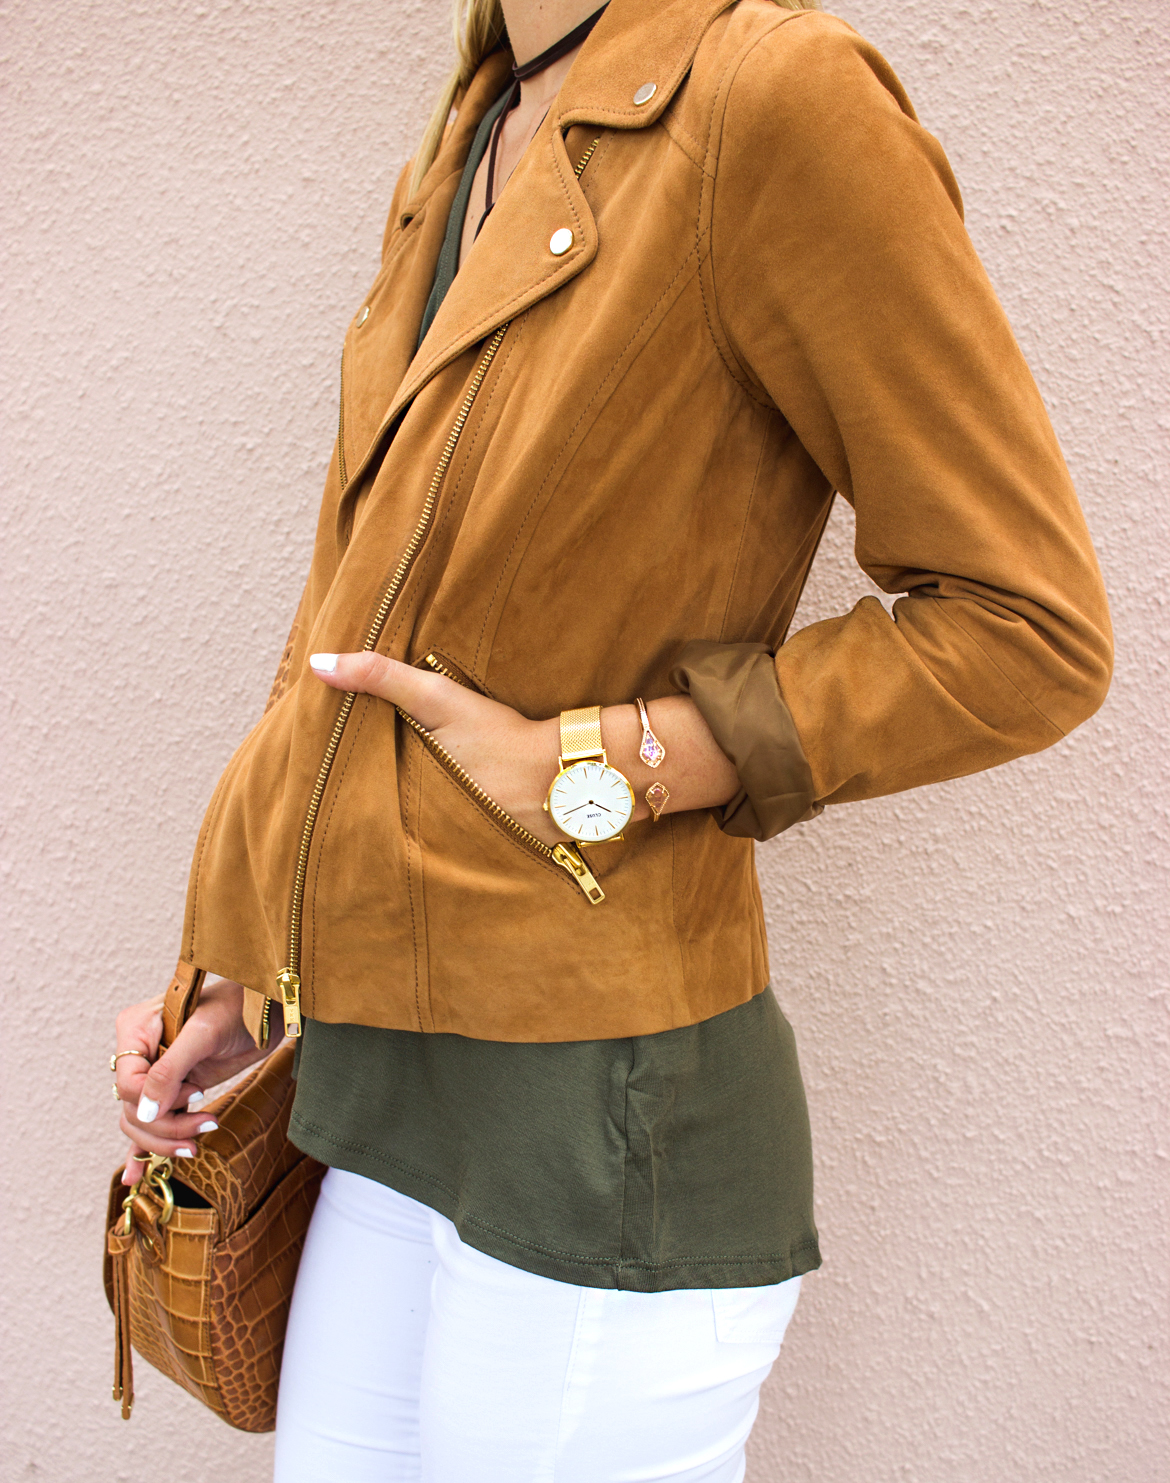 livvyland-blog-olivia-watson-boho-ootd-nordstrom-anniversary-sale-must-haves-what-to-buy-suede-tan-jacket-fall-summer-outfit-cluse-gold-watch-5